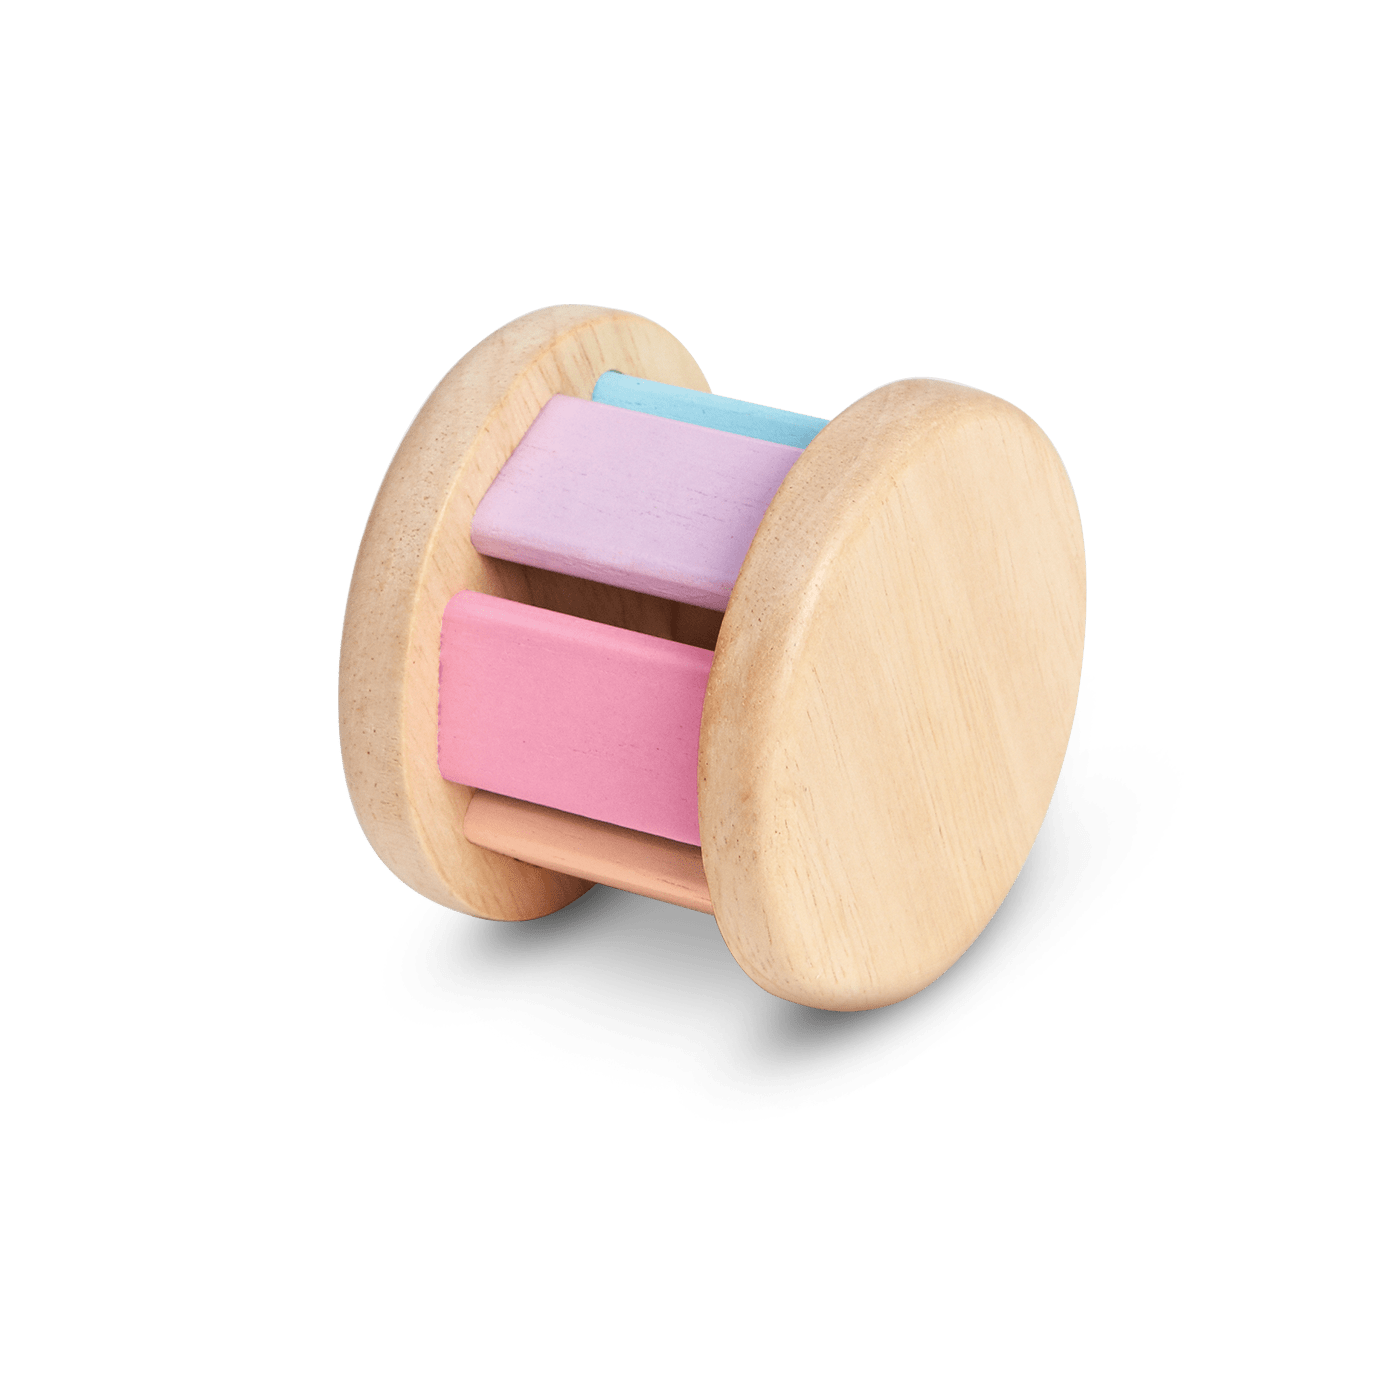 5255_PlanToys_ROLLER_Babies_Gross_Motor_Visual_Auditory_Tactile_Fine_Motor_Emotion_6m_Wooden_toys_Education_toys_Safety_Toys_Non-toxic_0.png